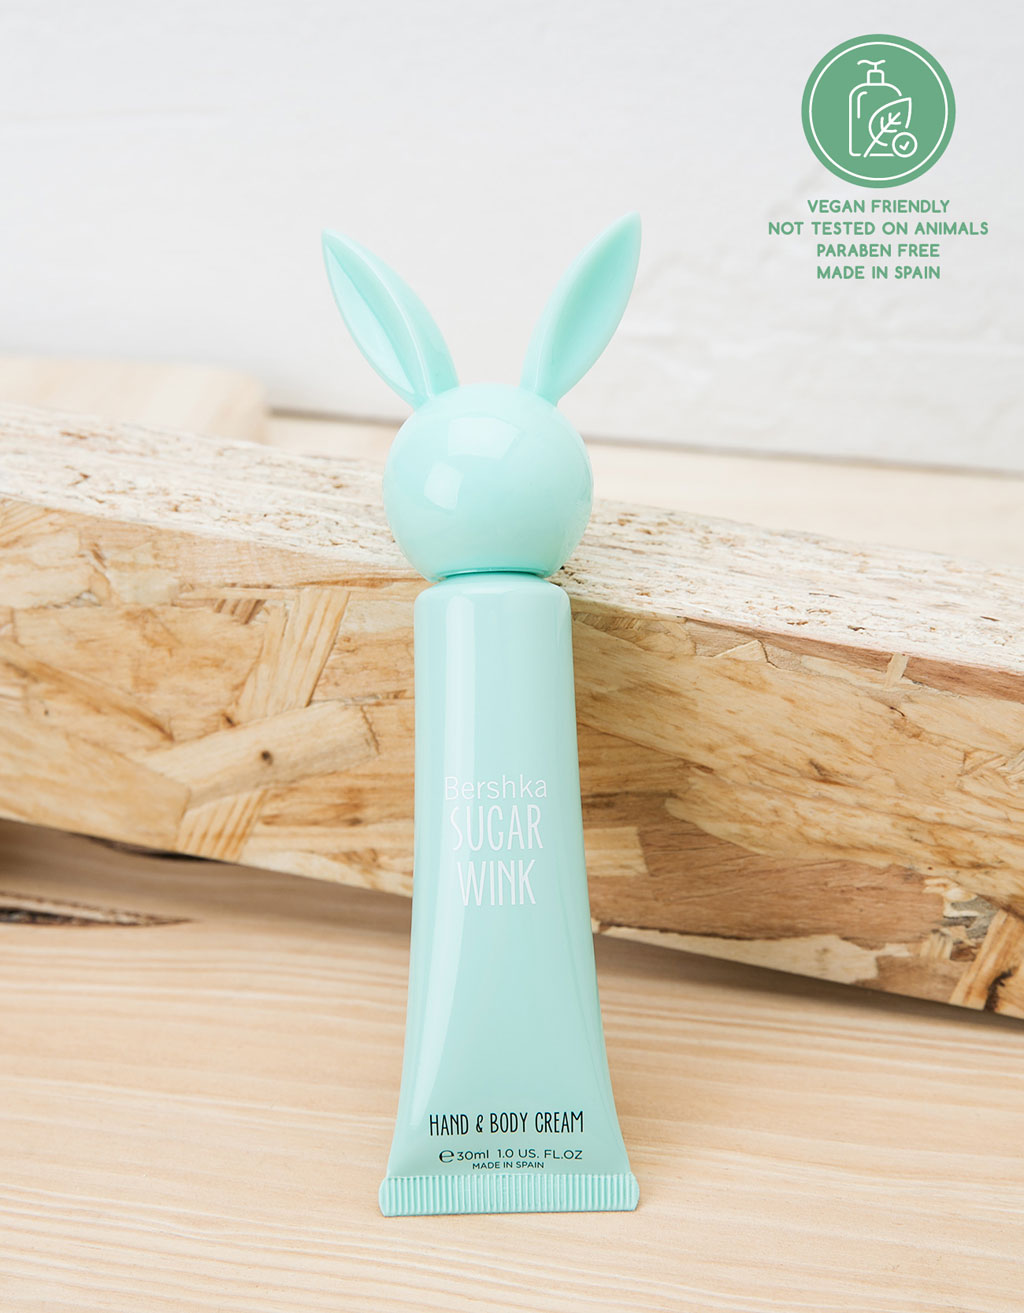 30 ml 'Sugar Wink' hand and body cream